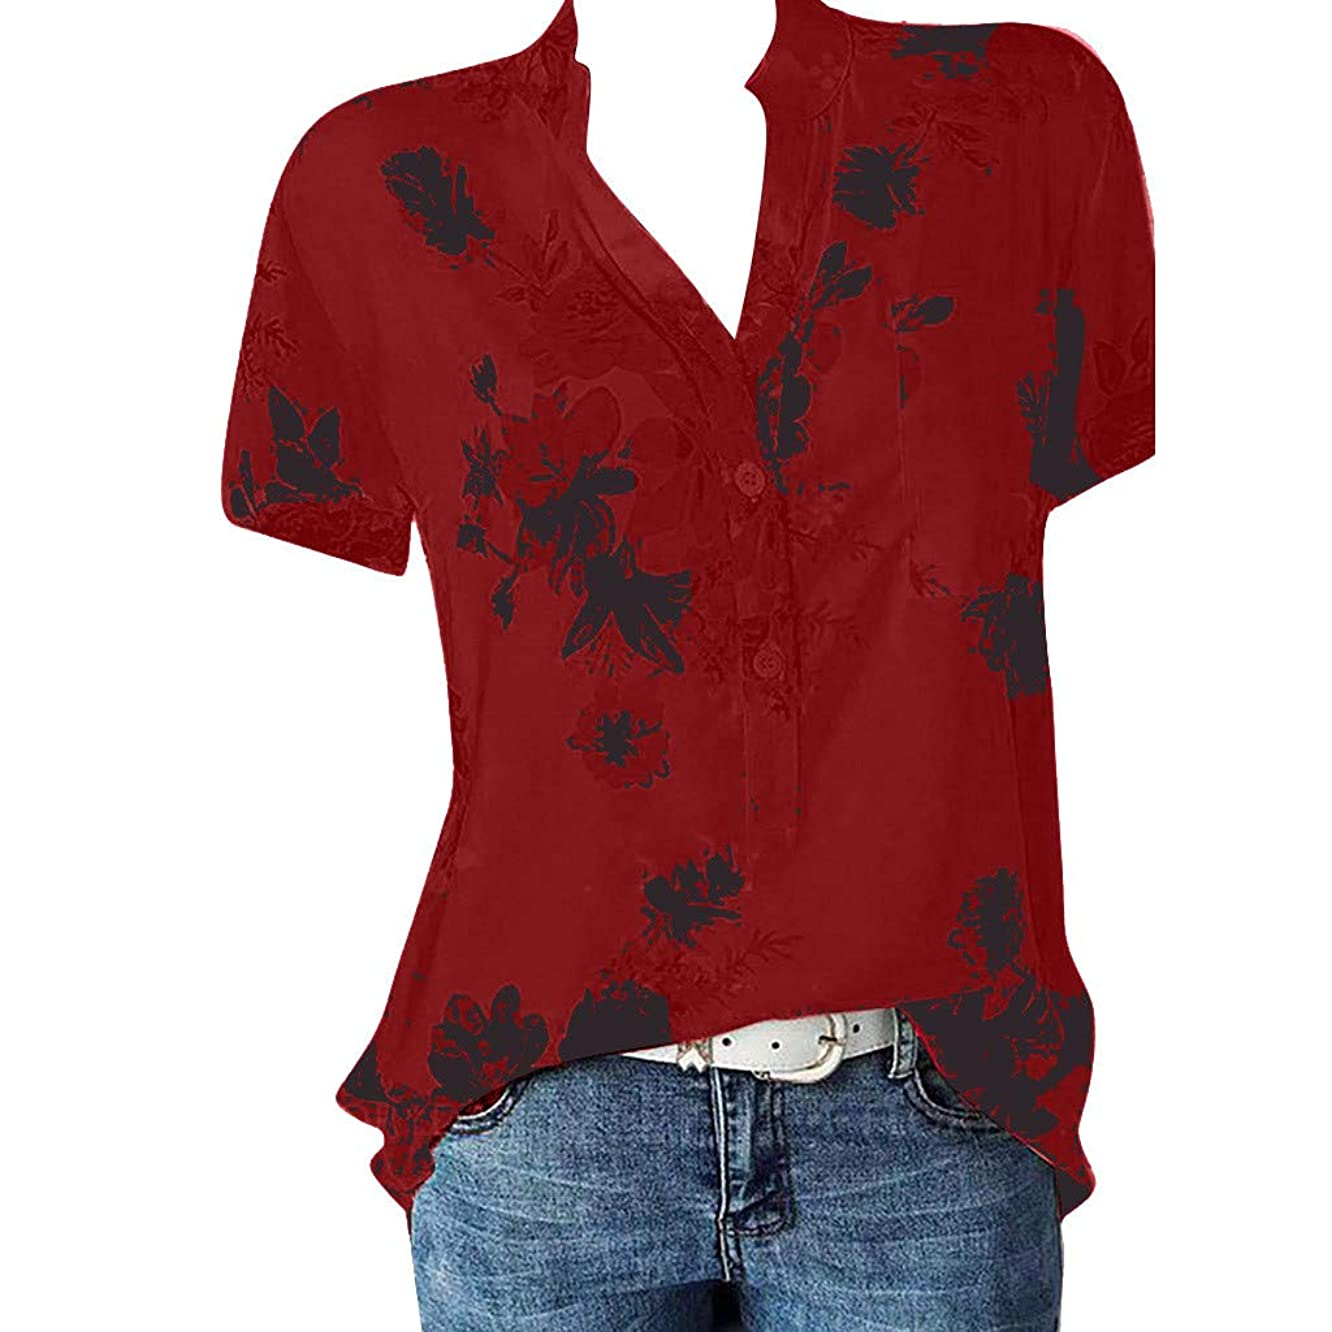 Fashion Womens Tops Casual Chiffon Button Floral Print Short Sleeve T-Shirts Blouses Loose Tunic Tops Tees Pullover